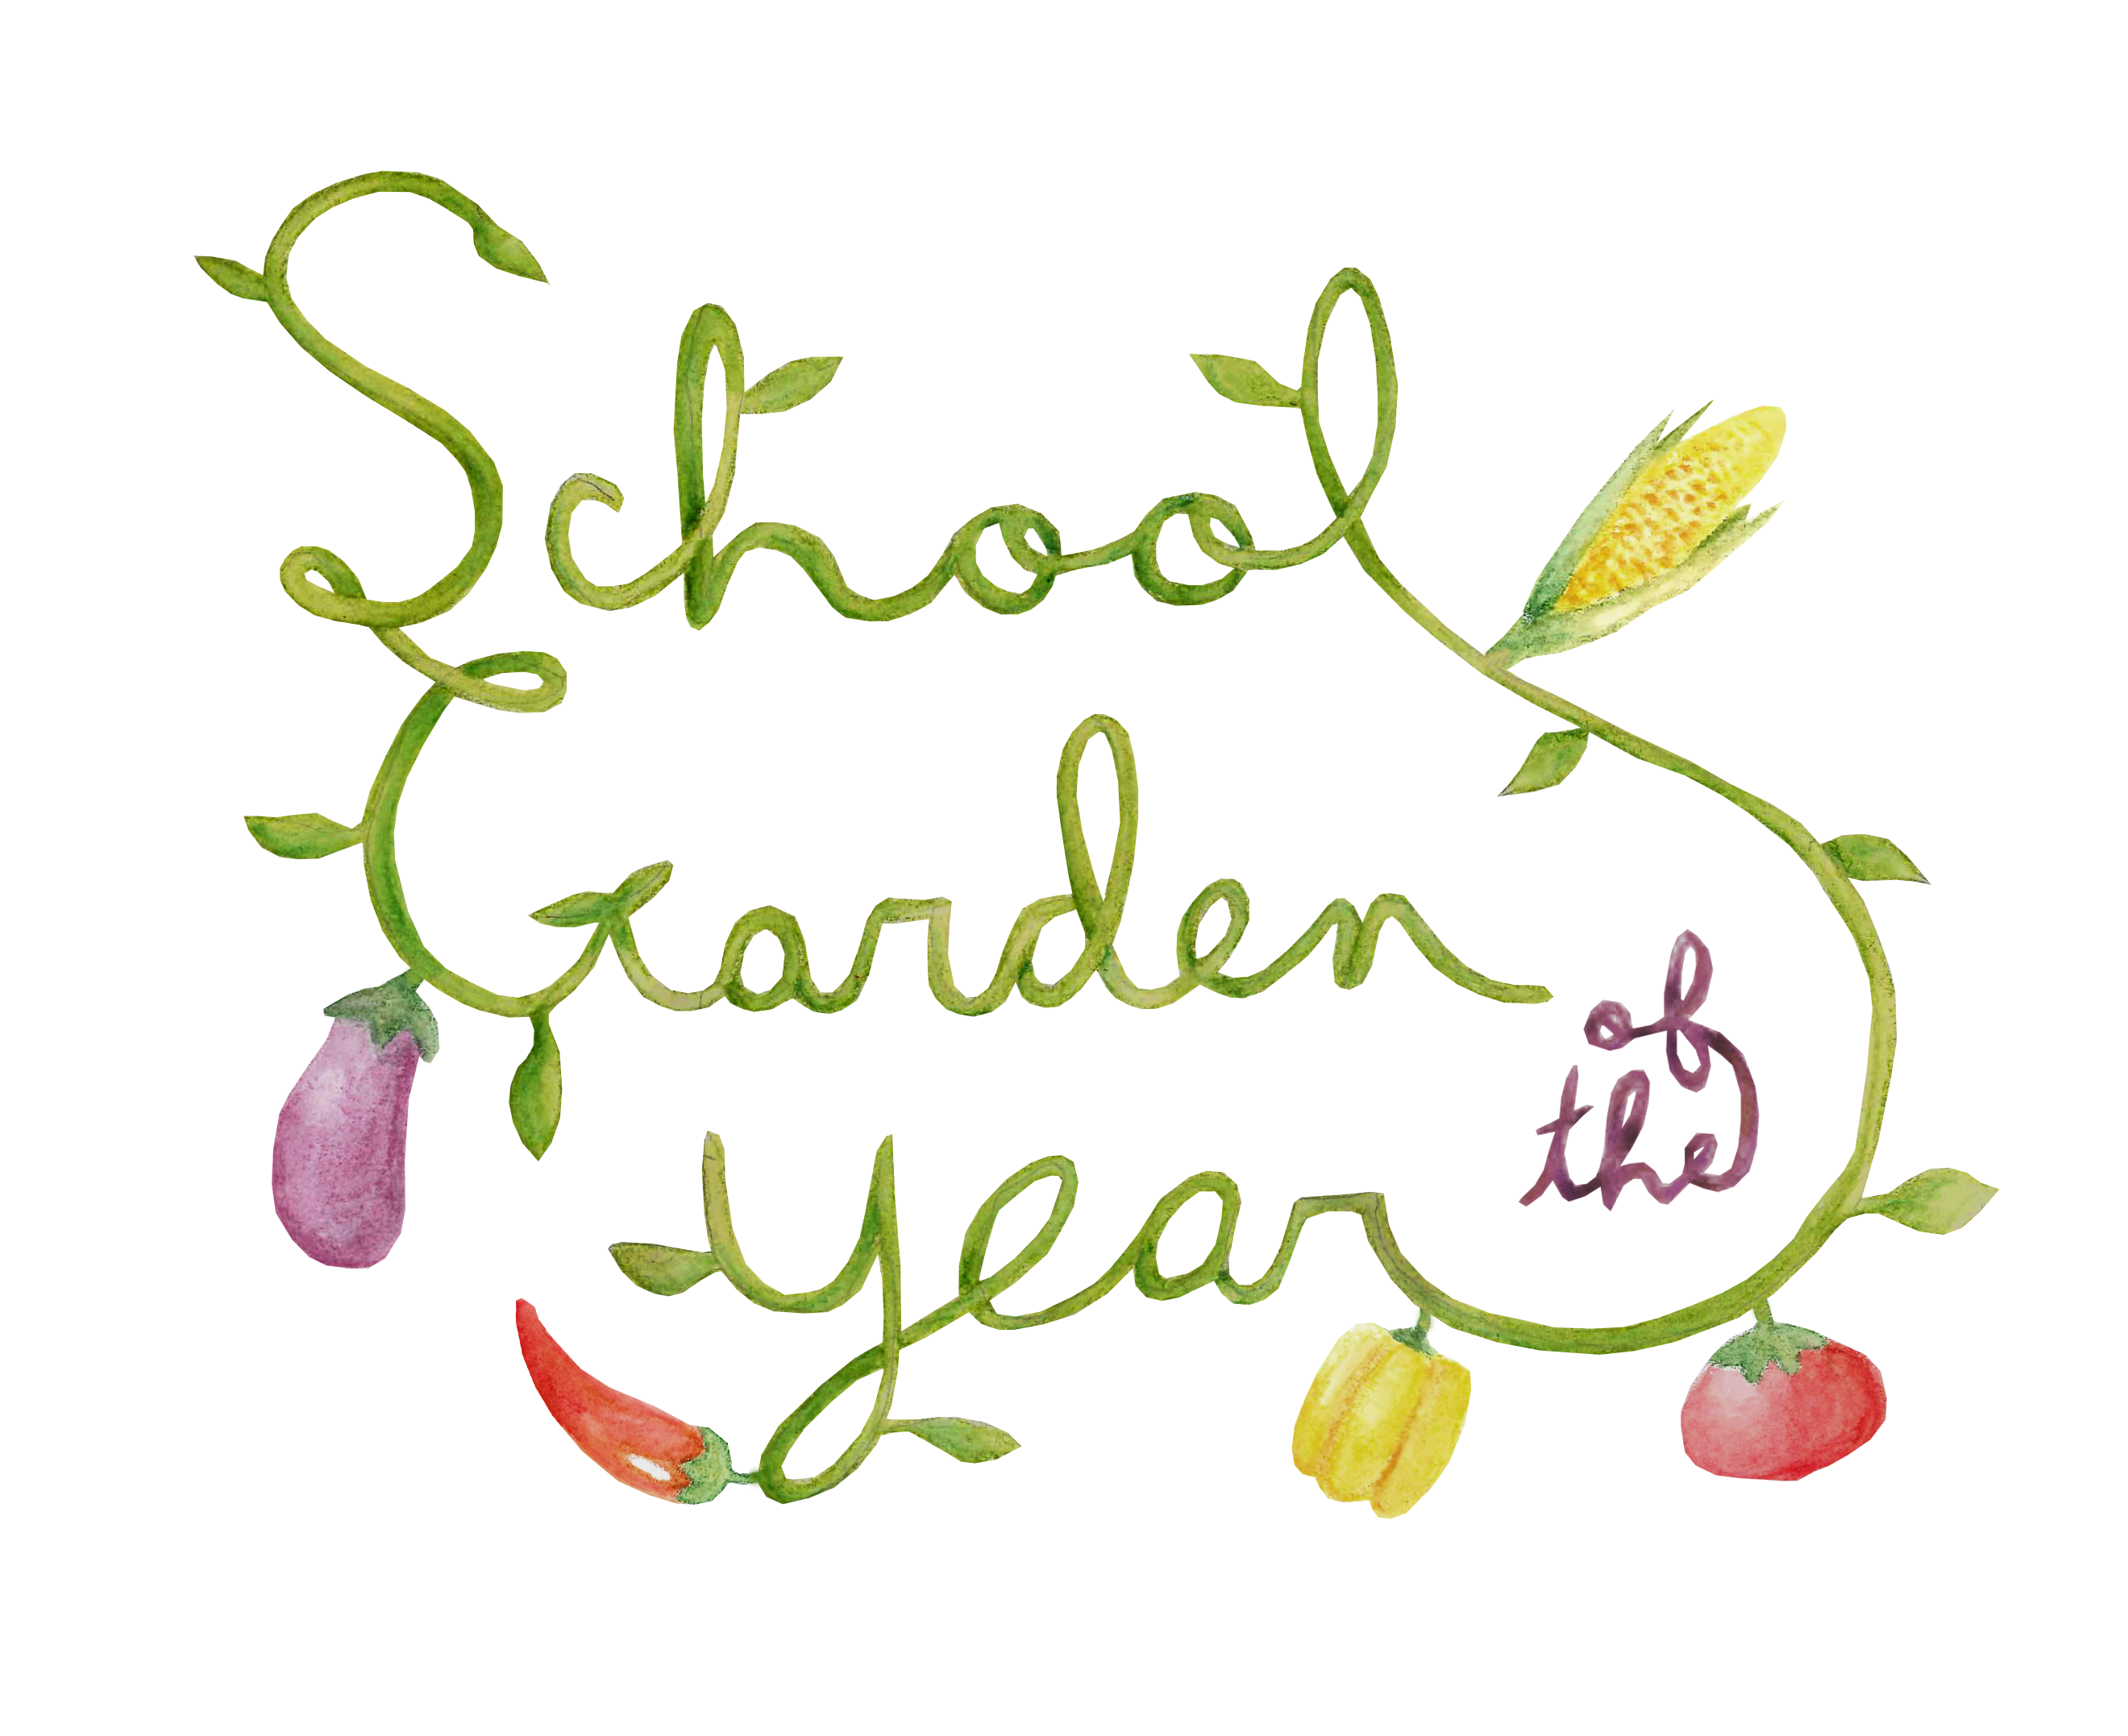 Environment clipart school garden. Indiana of the year